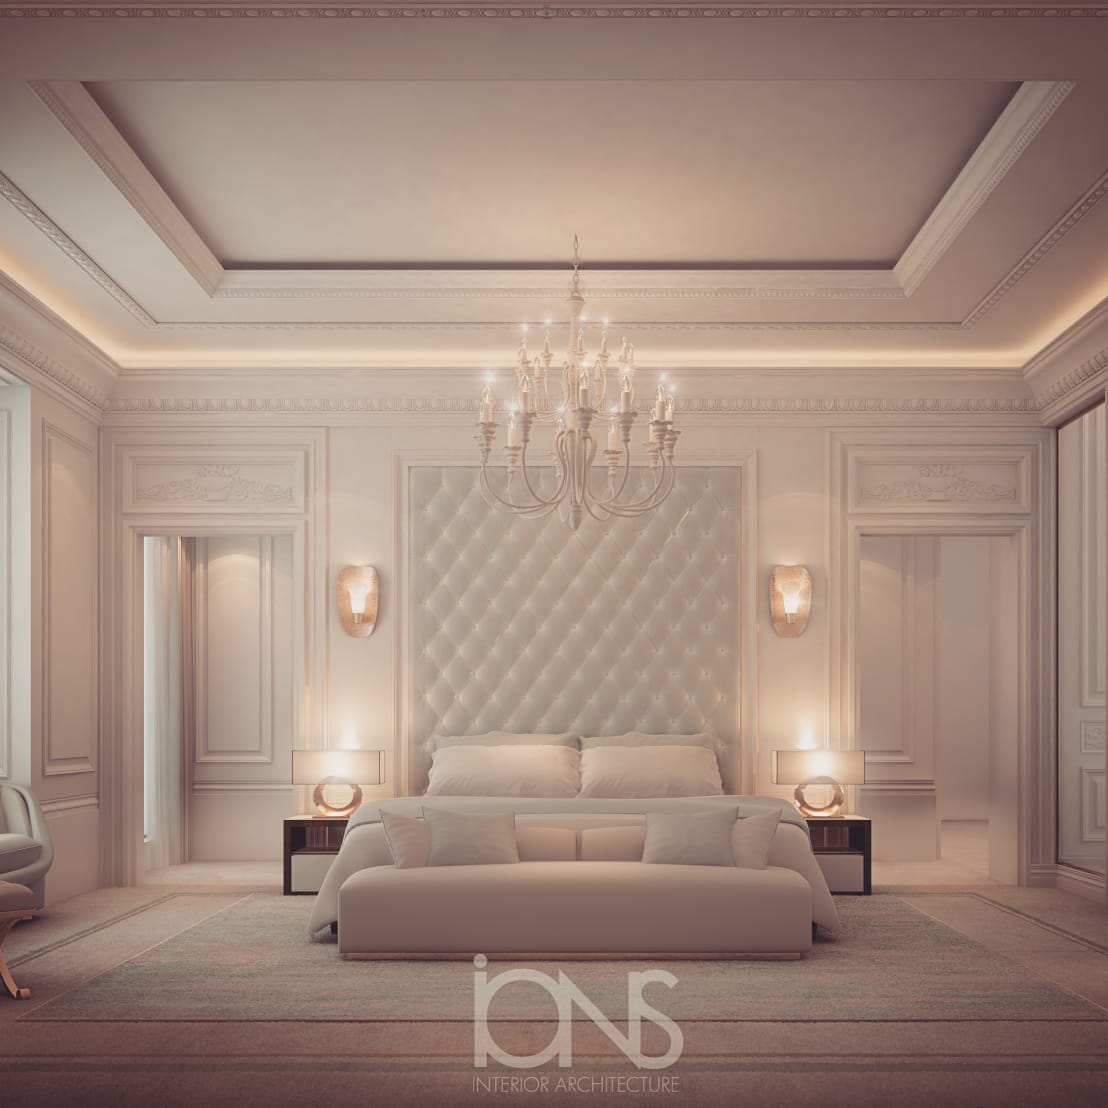 New Home Designs Latest Modern Interior Decoration: Bedroom Design In Dramatic Contrast By IONS DESIGN